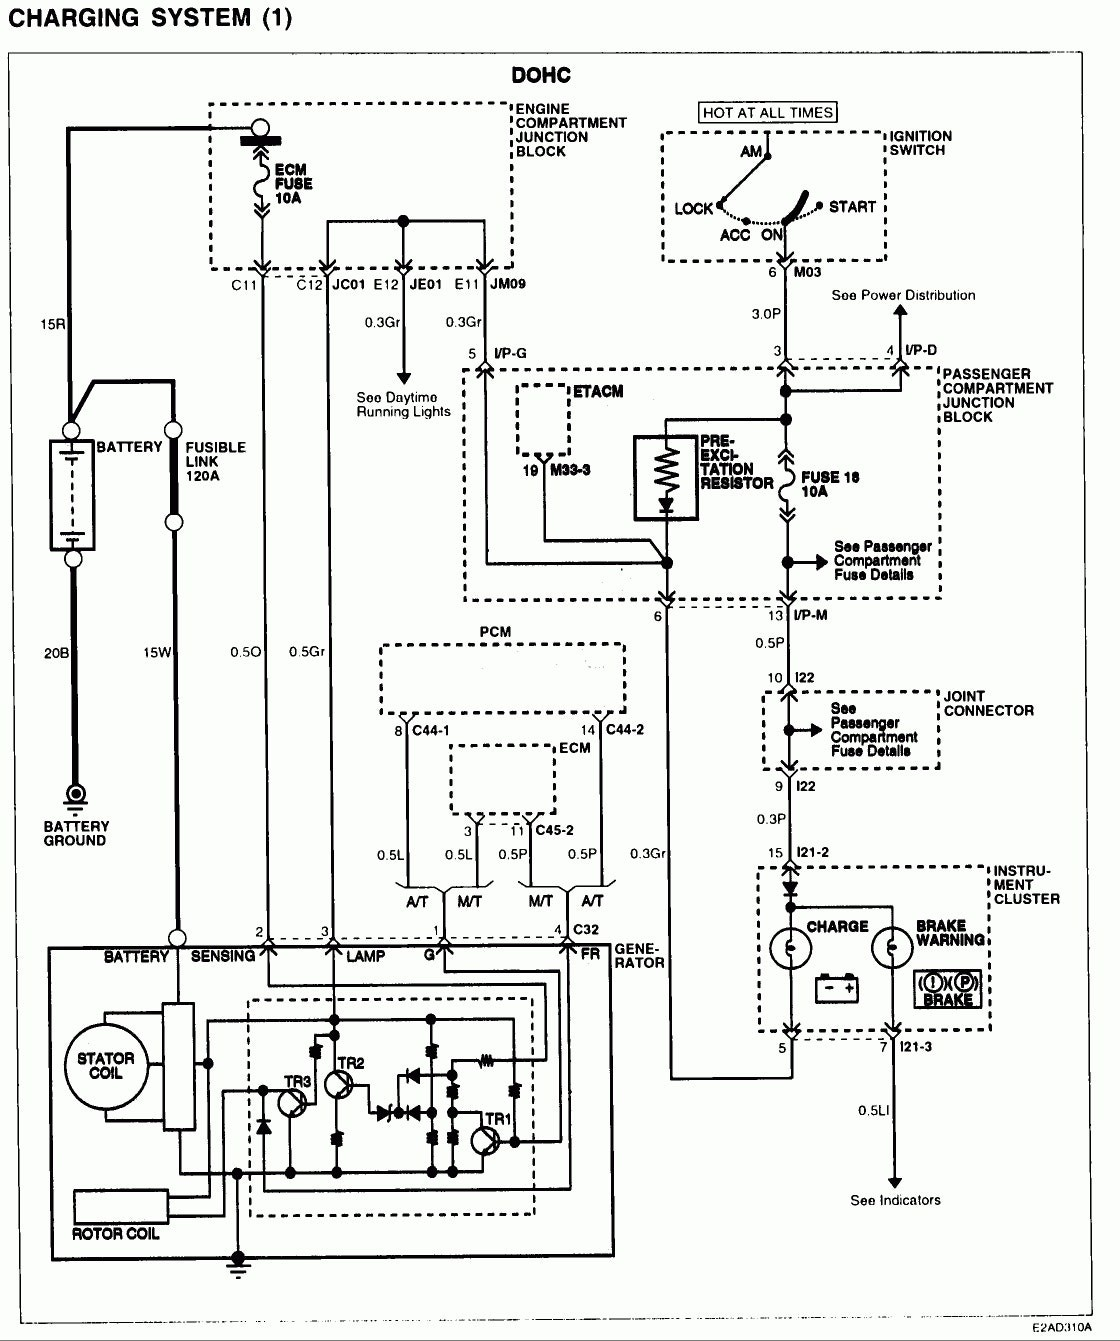 07 Escalade Wiring Diagram